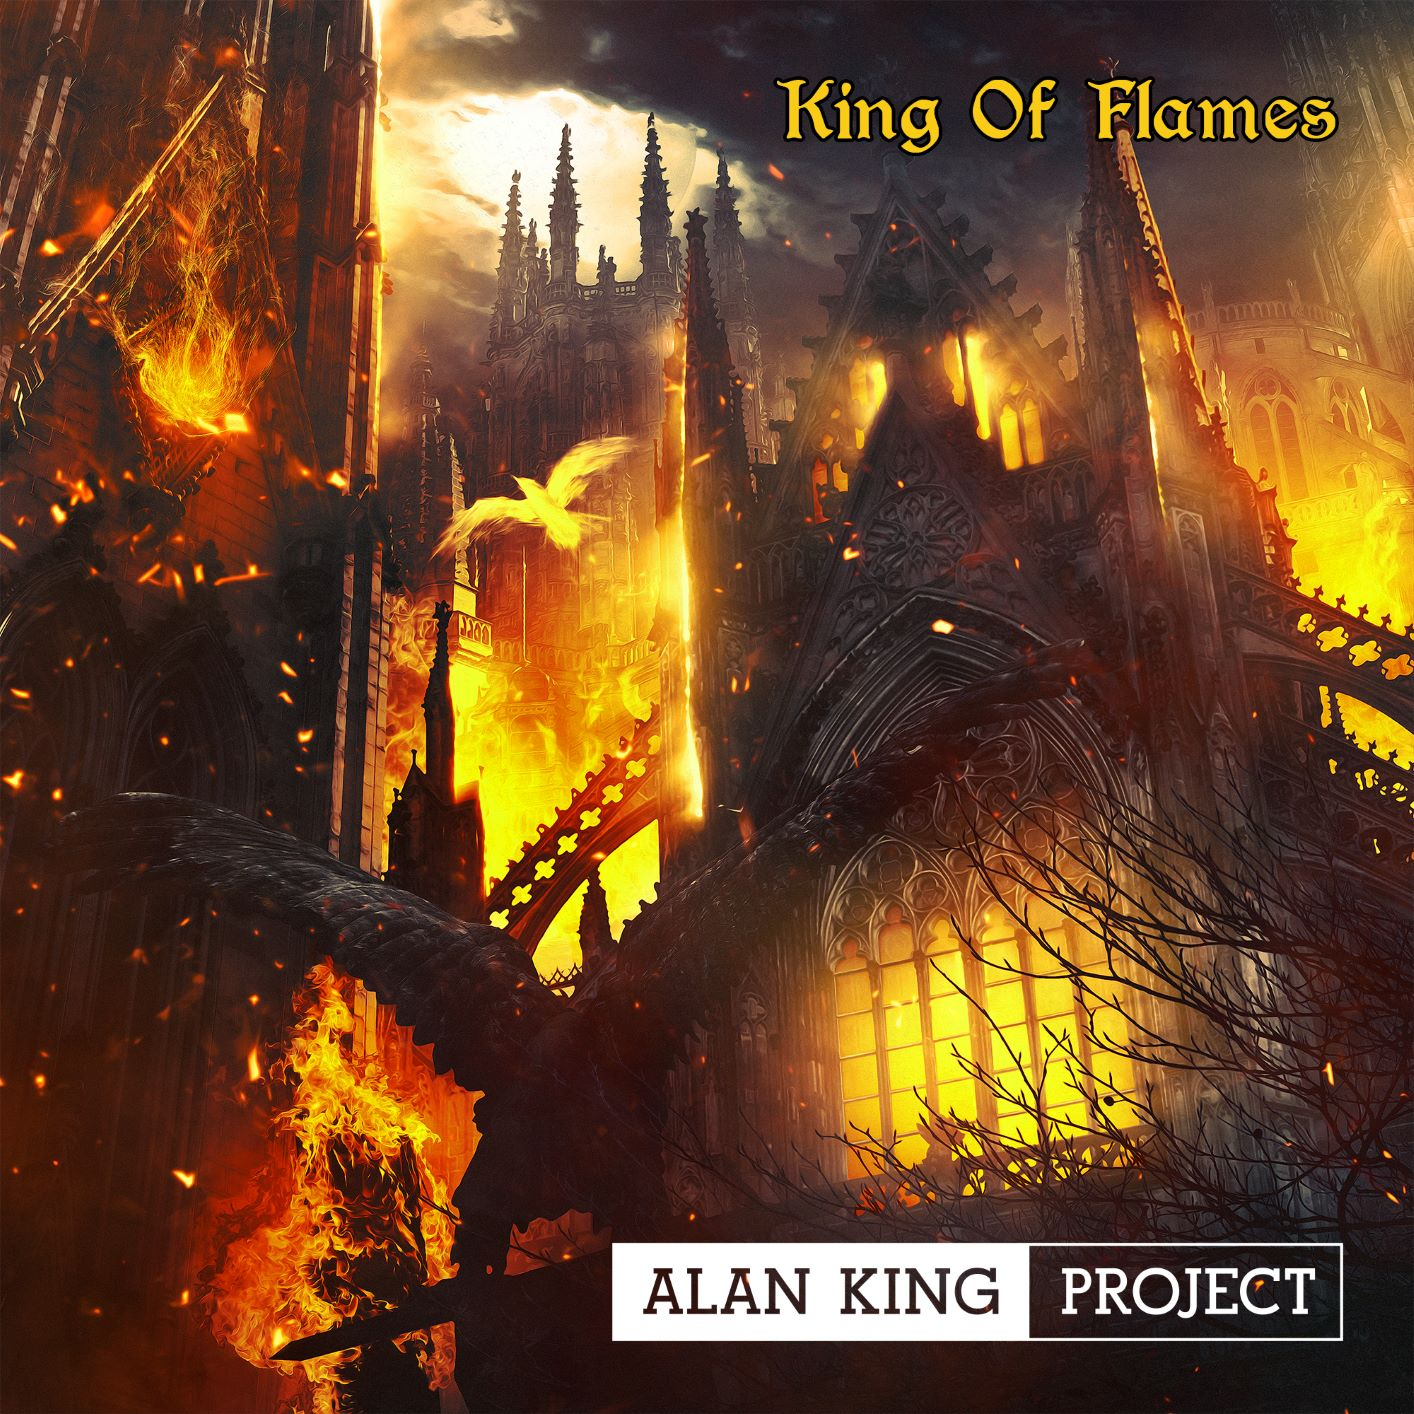 A Groundbreaking Mix of Heavy Metal and Soothing Classical With Alan King Project's 'King of Flames'